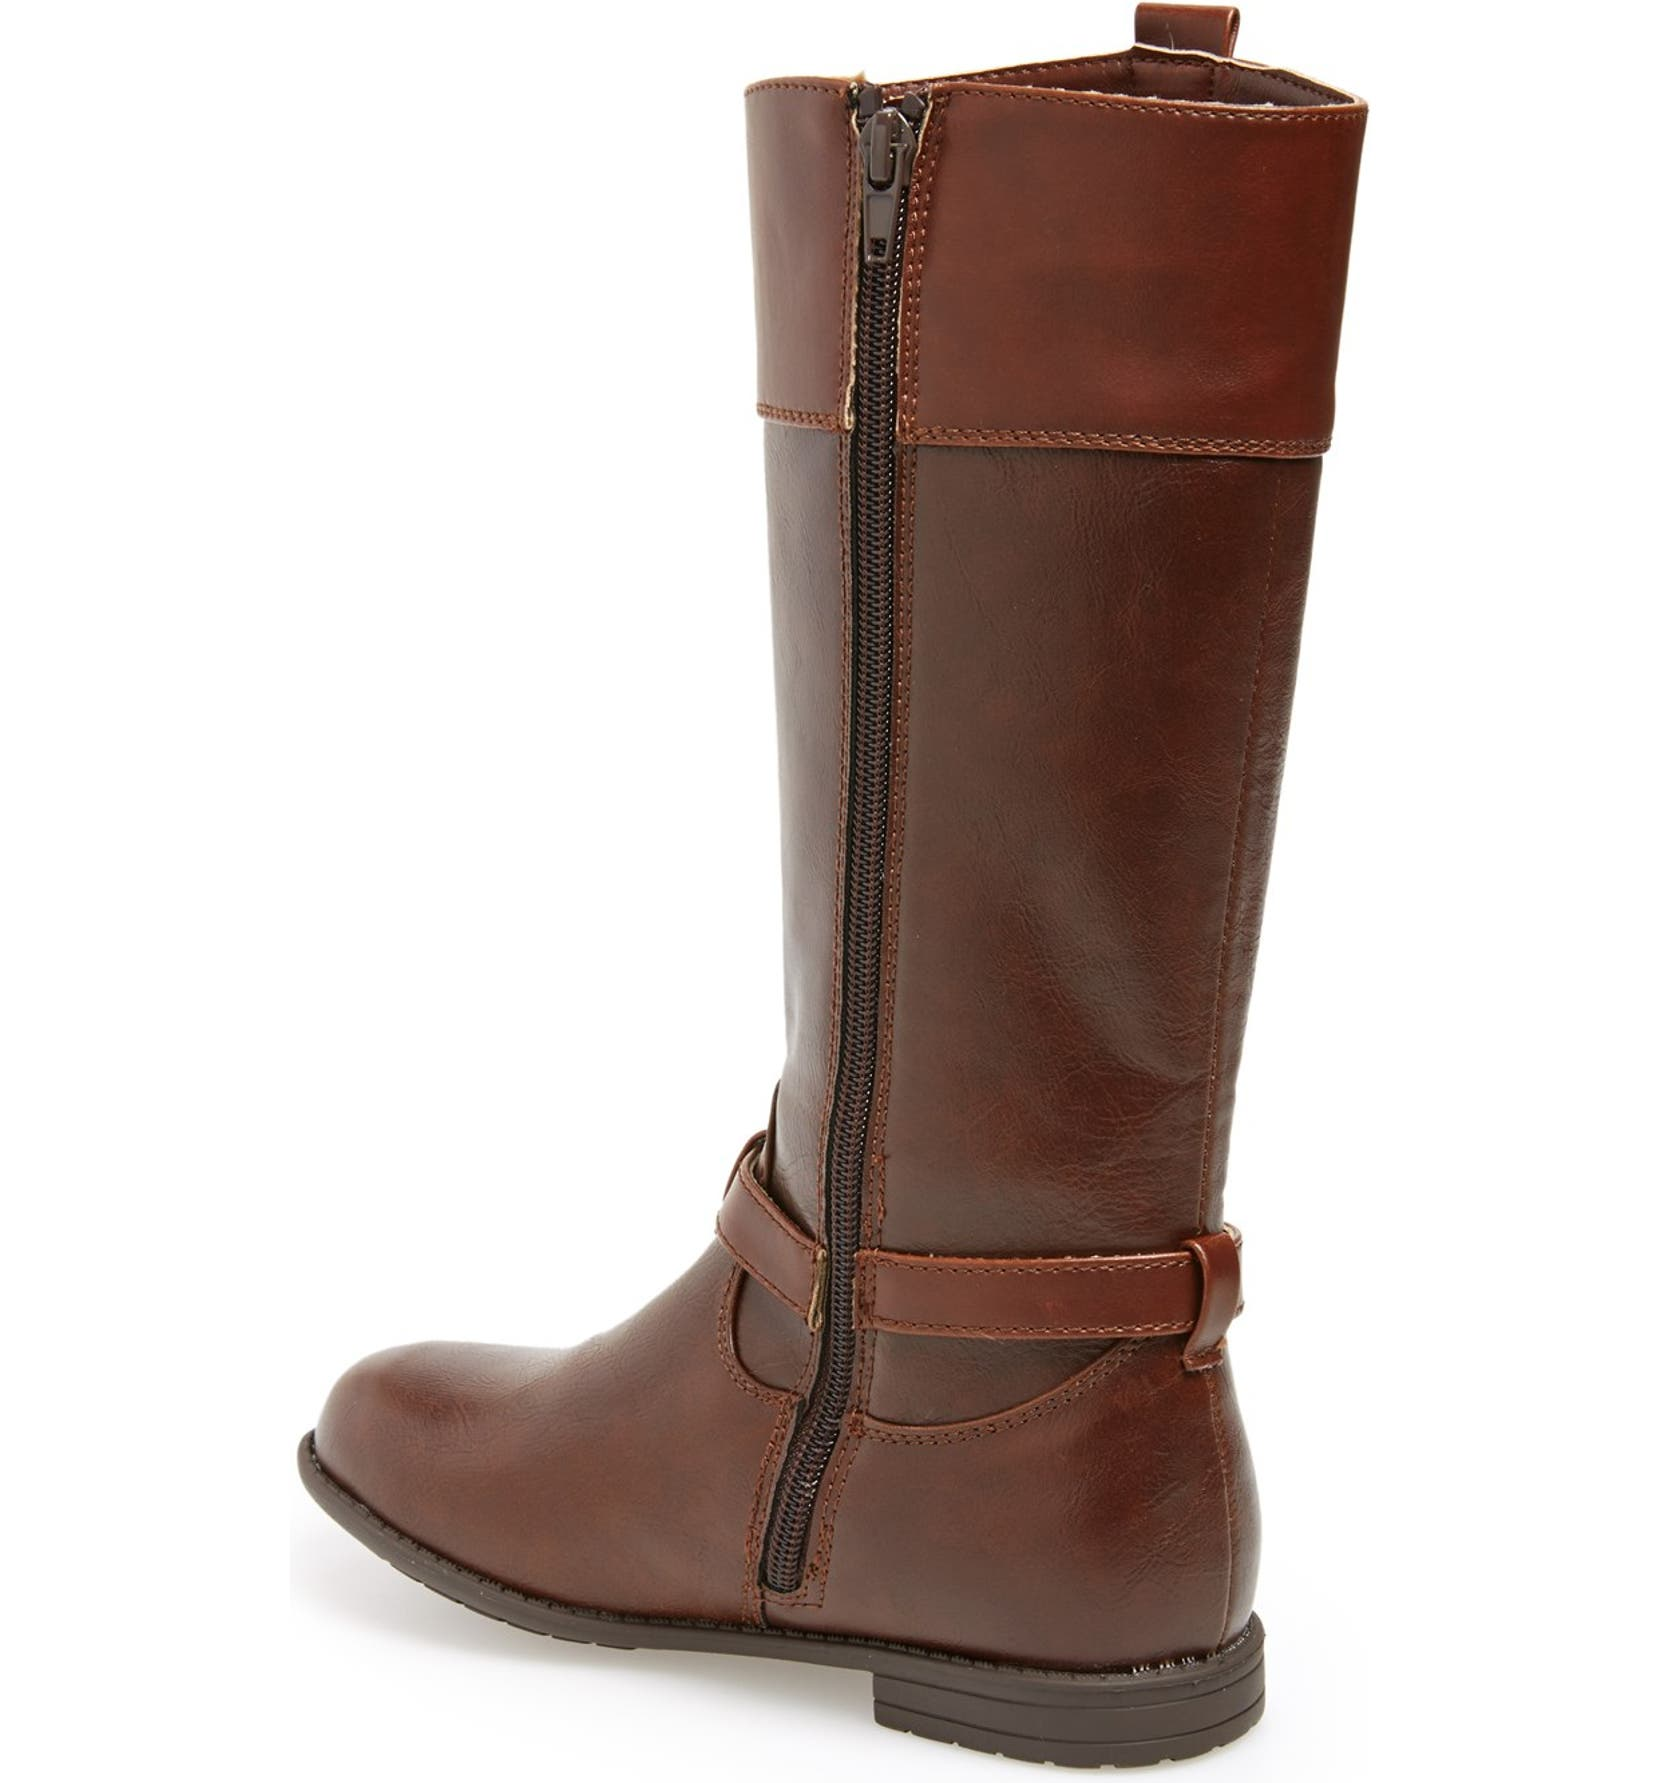 26240018a Tommy Hilfiger 'Andrea' Riding Boot (Toddler, Little Kid & Big Kid) |  Nordstrom